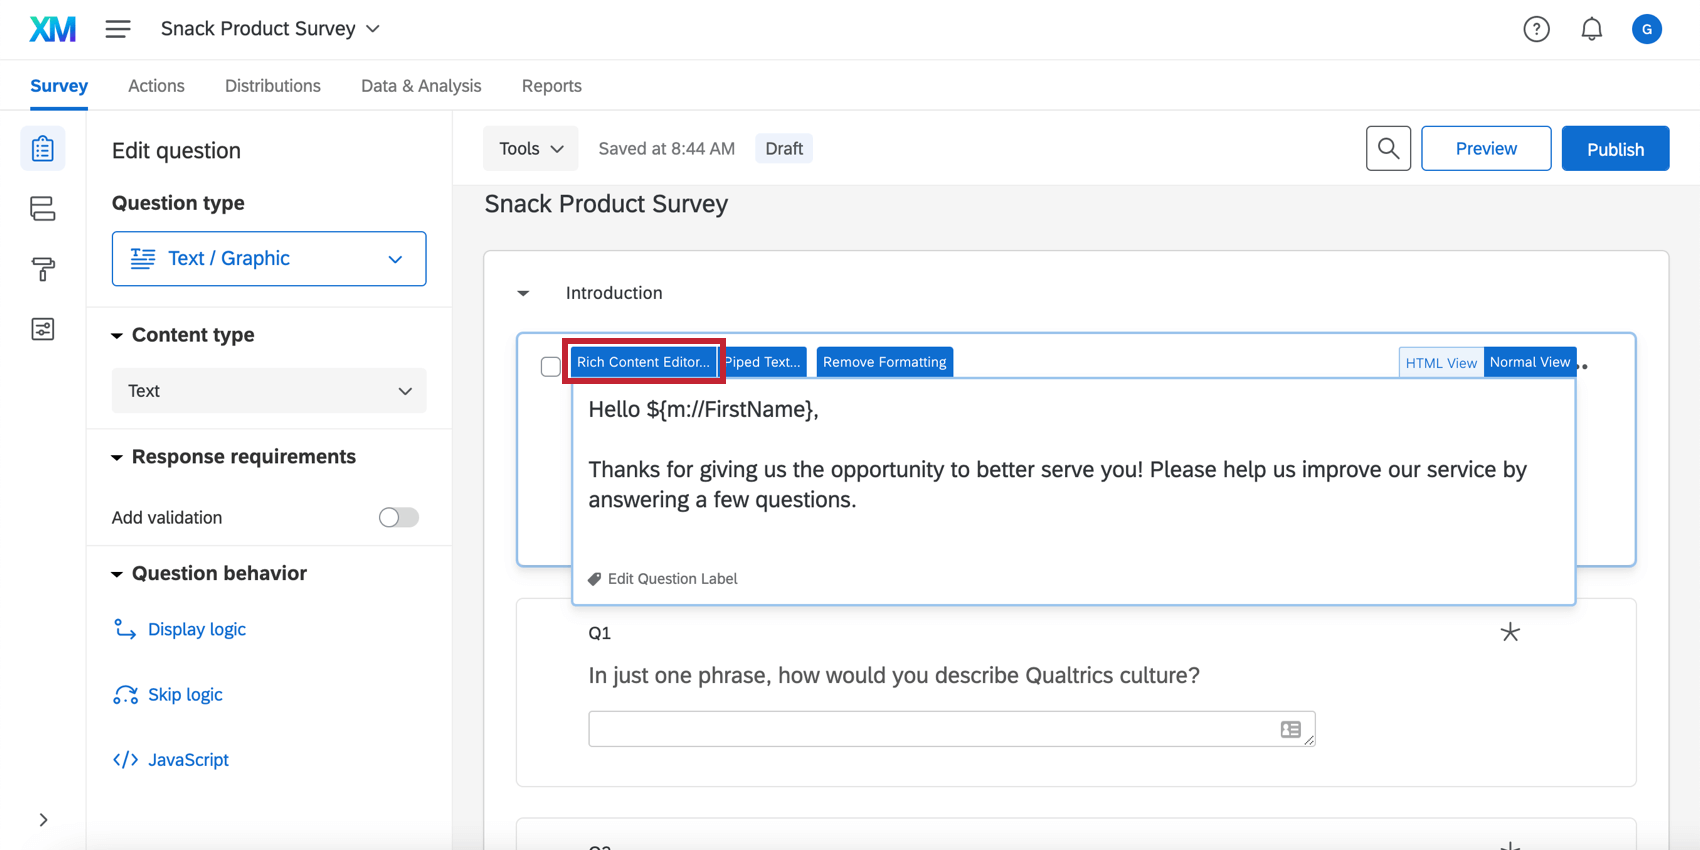 Rich Content Editor button at the top left of the question editor